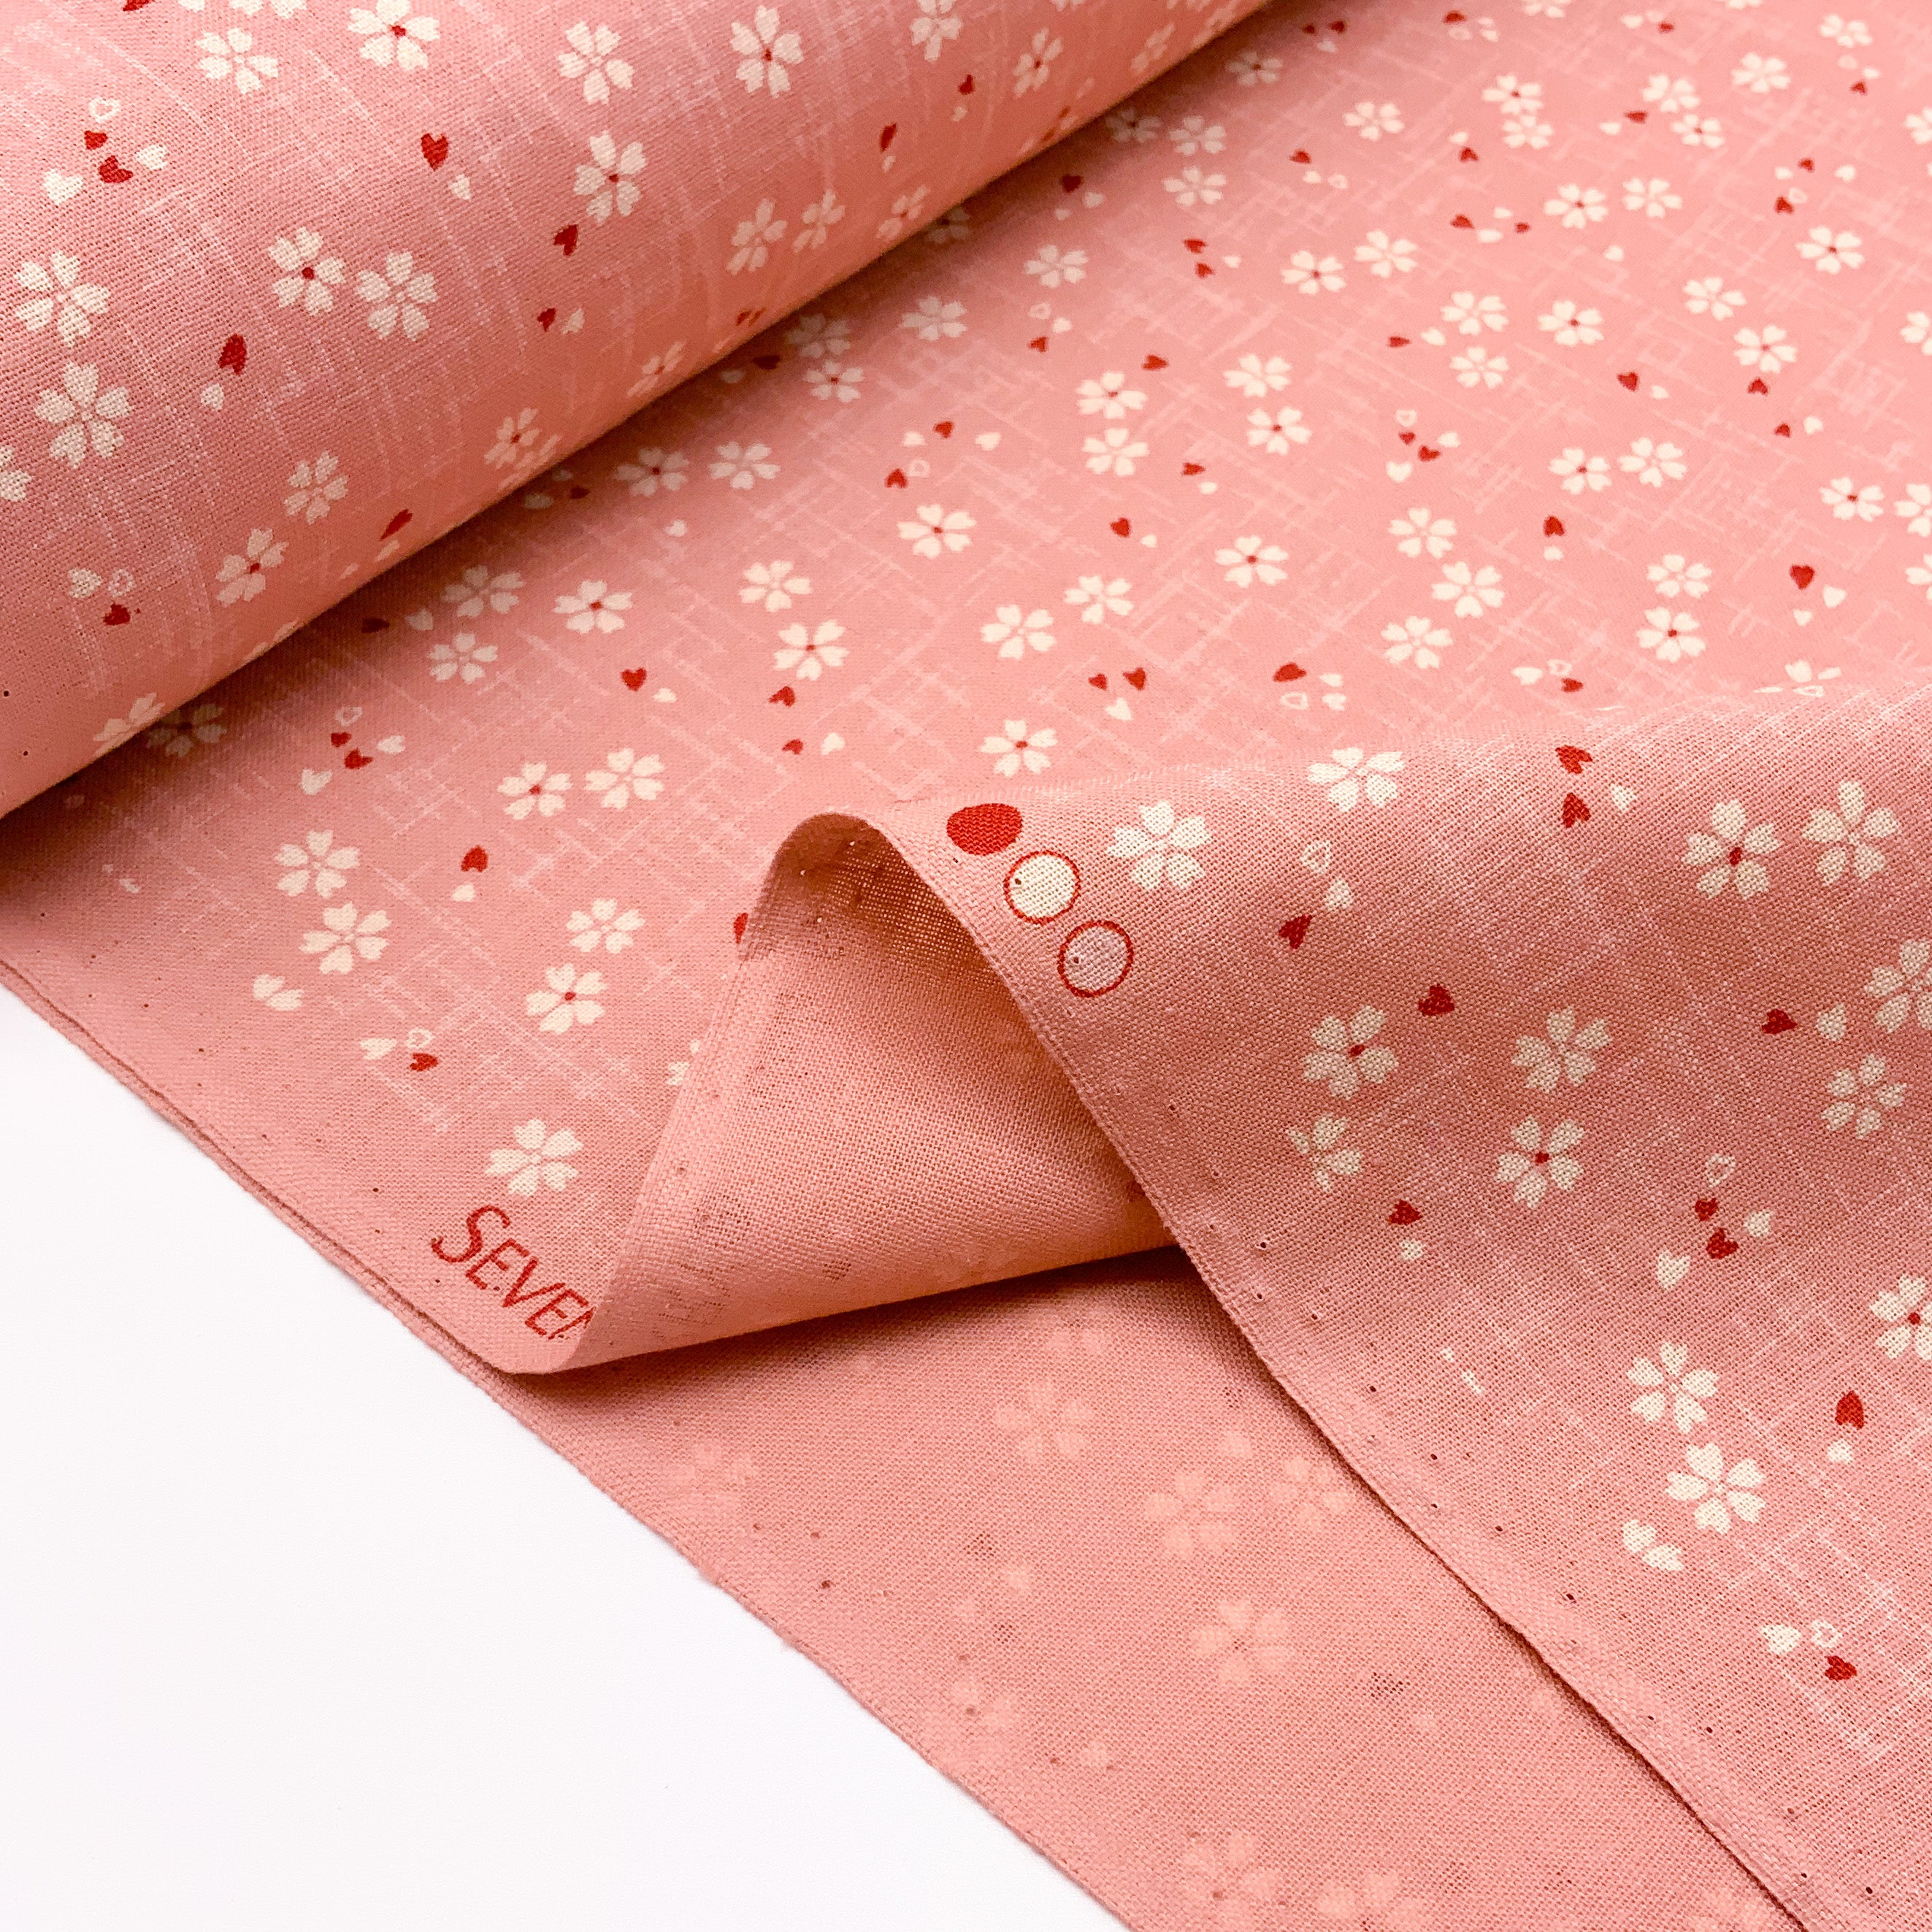 Japanese Cotton Sheeting Print - Cherry Blossom with Falling Petals Pink